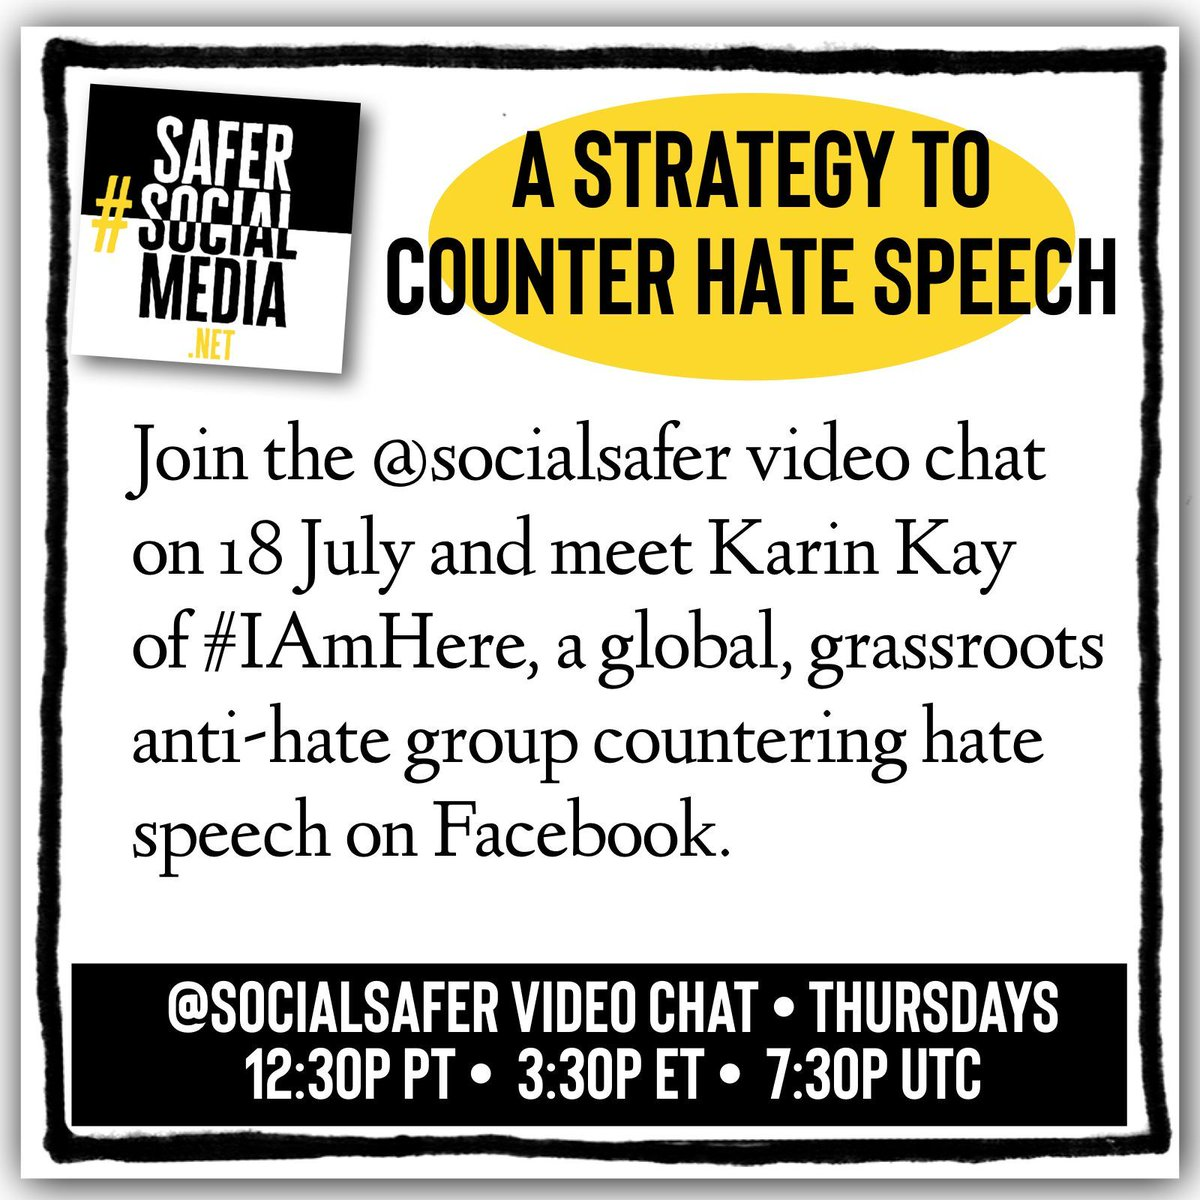 Join our @socialsafer video chat  on 18 July and meet Karin Kay  of #IAmHere, a global, grassroots  anti-hate group countering hate  speech on Facebook. We'll be posting six discussion questions along with the video.     Pls retweet! #antihate #hatespeech  #SocialSafer #iamhere